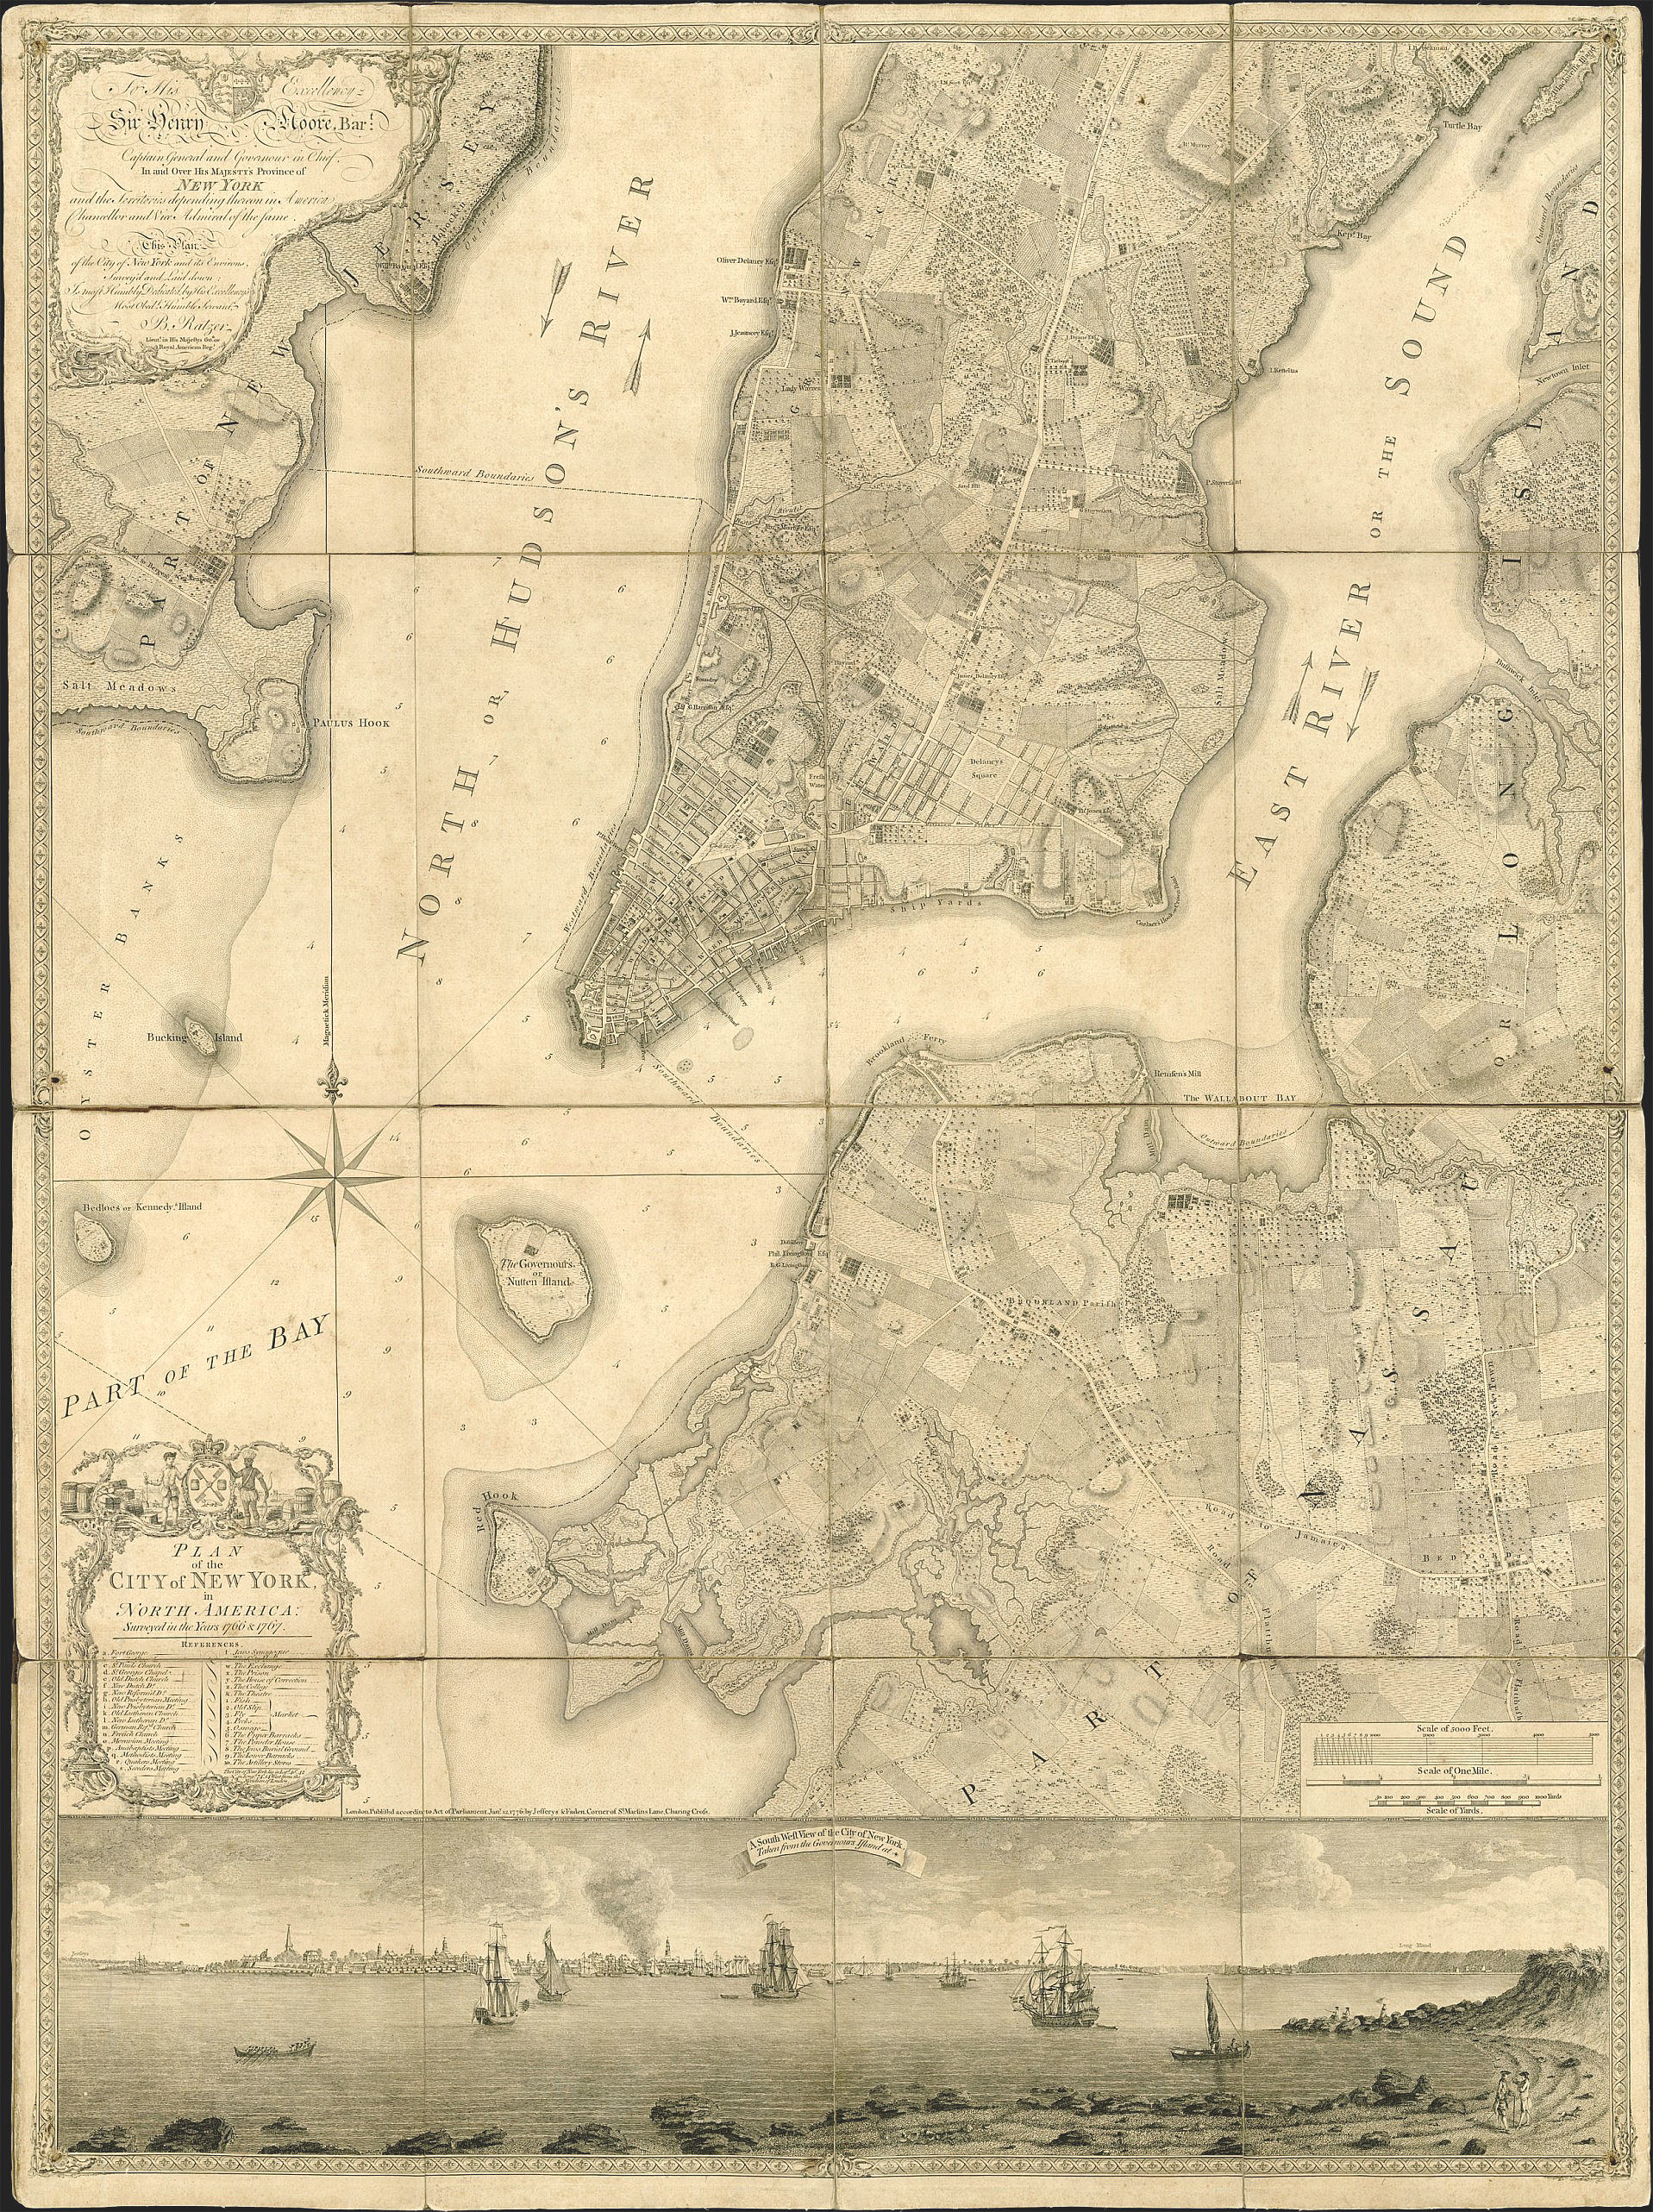 Revolutionary War Map Of New York.Jersey City New Jersey Revolutionary War Sites Jersey City